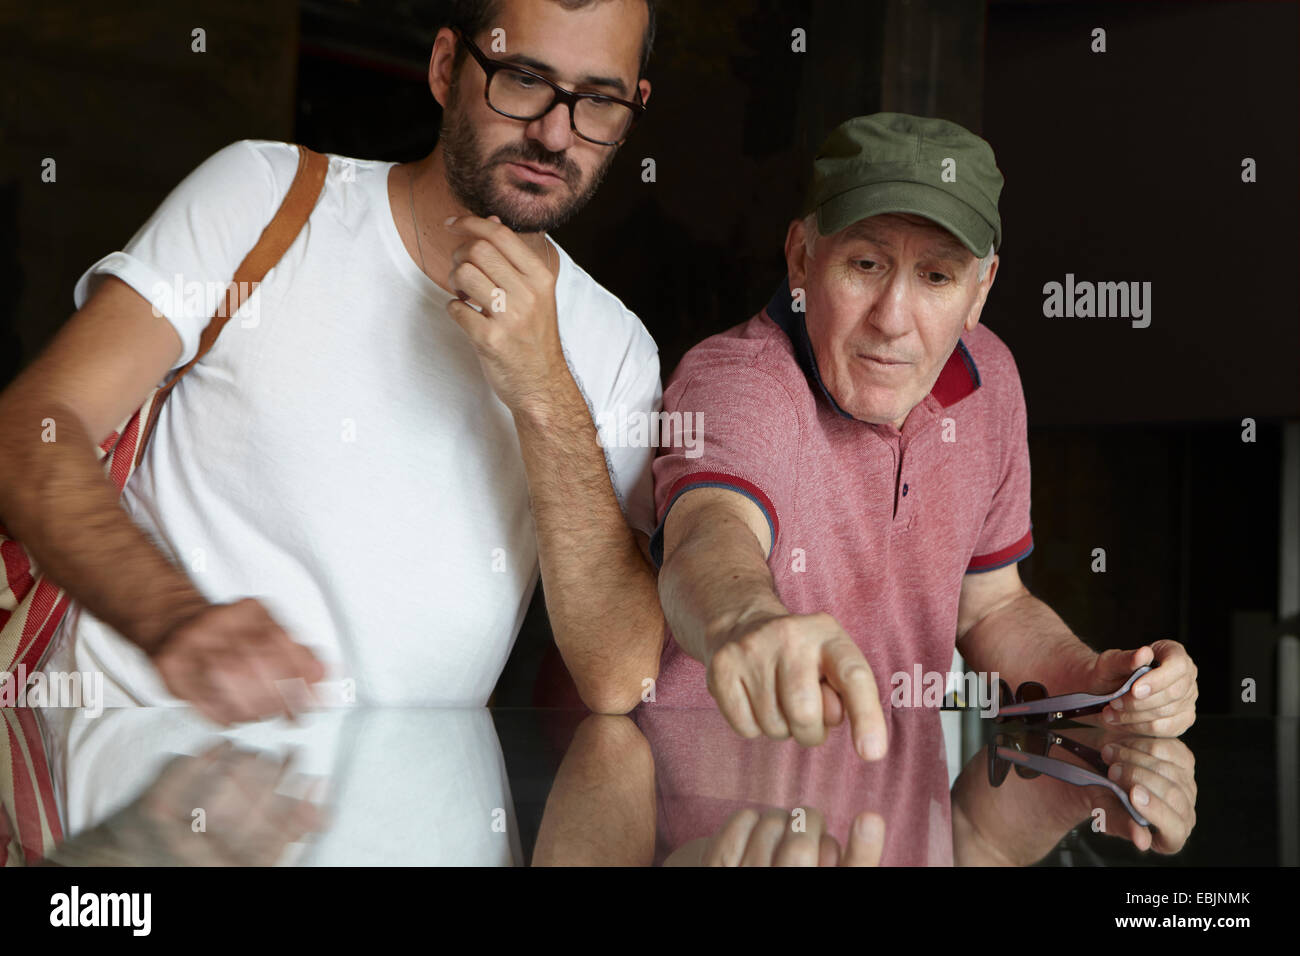 Mid adult man looking at senior man pointing - Stock Image